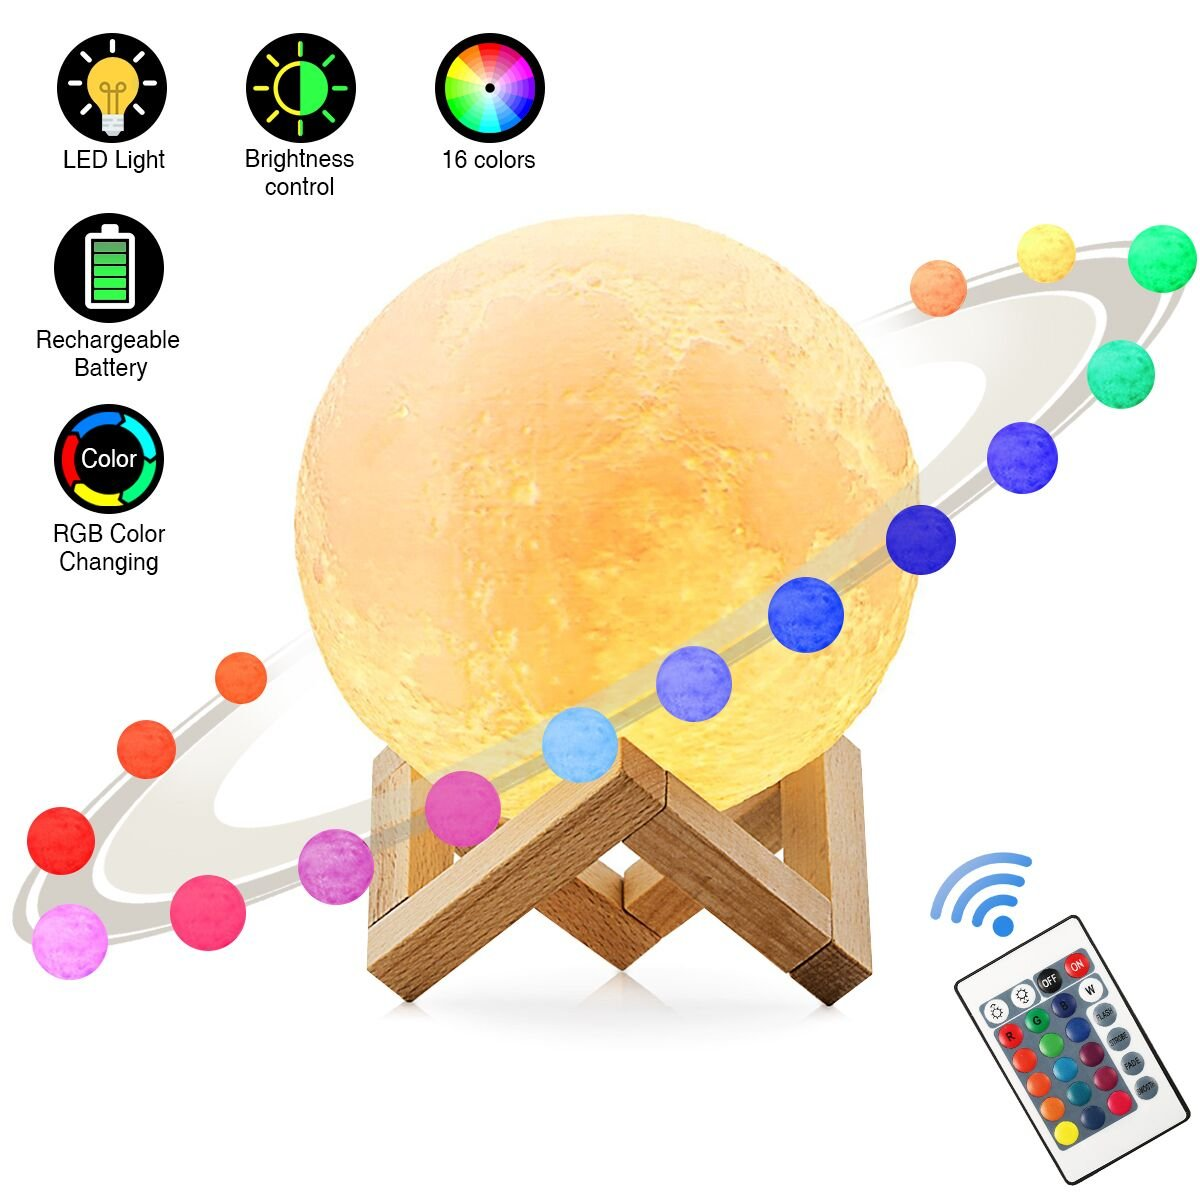 Elfeland Children Night Light LED Moon Light RGB Moon Lamp 3D Printing Mood Light 16 Colors USB Rechargeable Dimmable Remote&Touch Control for Kids Bedroom Decoration Gift (15cm)